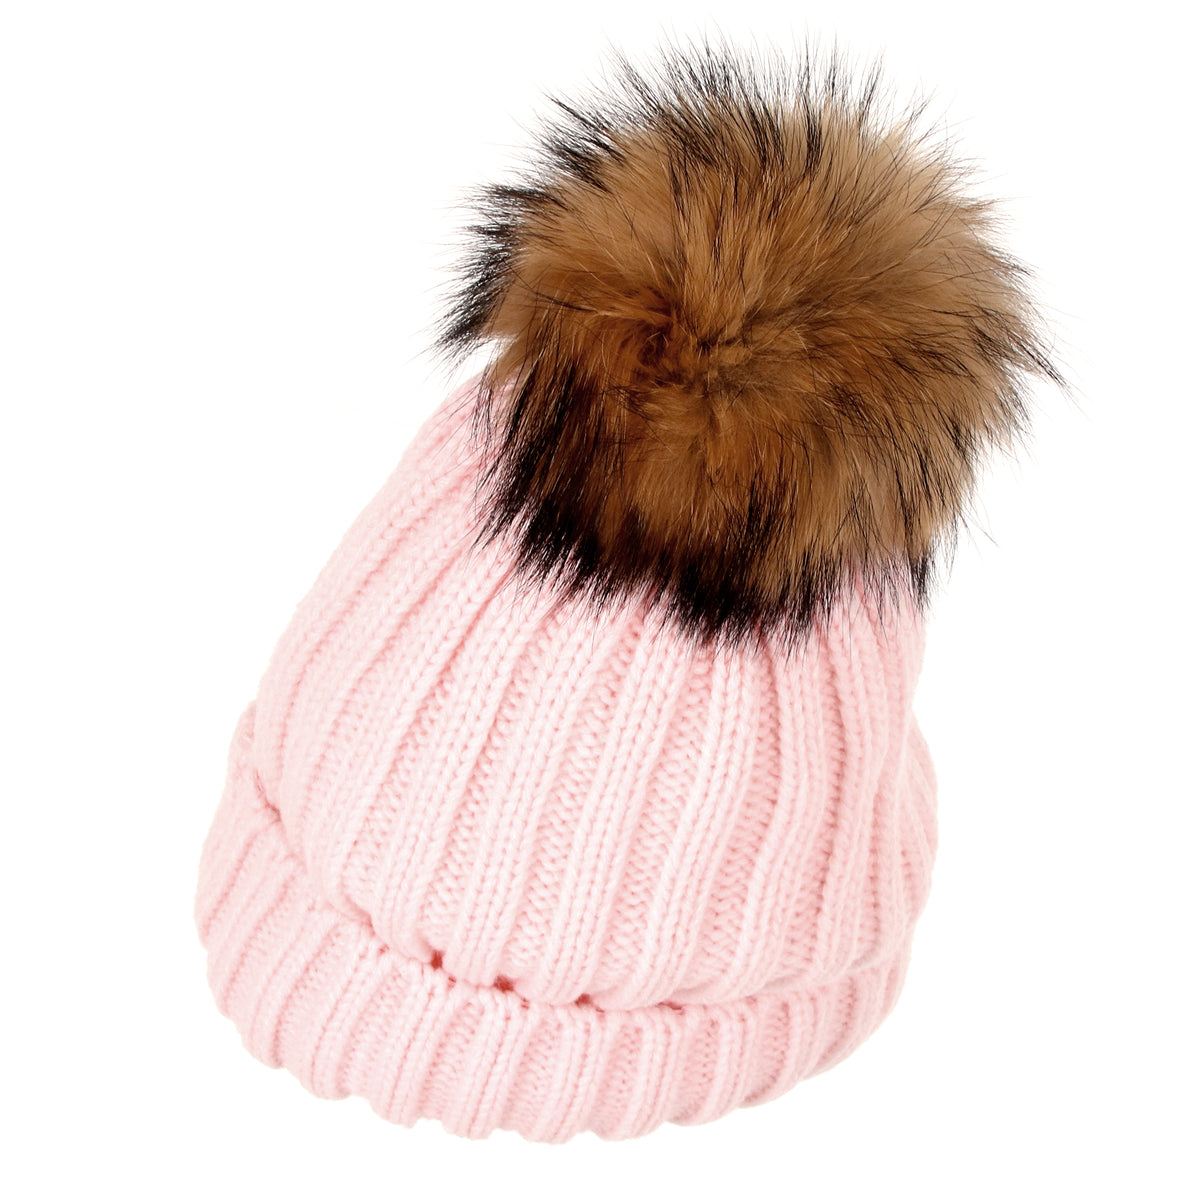 ARCTIC BOBBLE (LIGHT PINK/NATURAL)